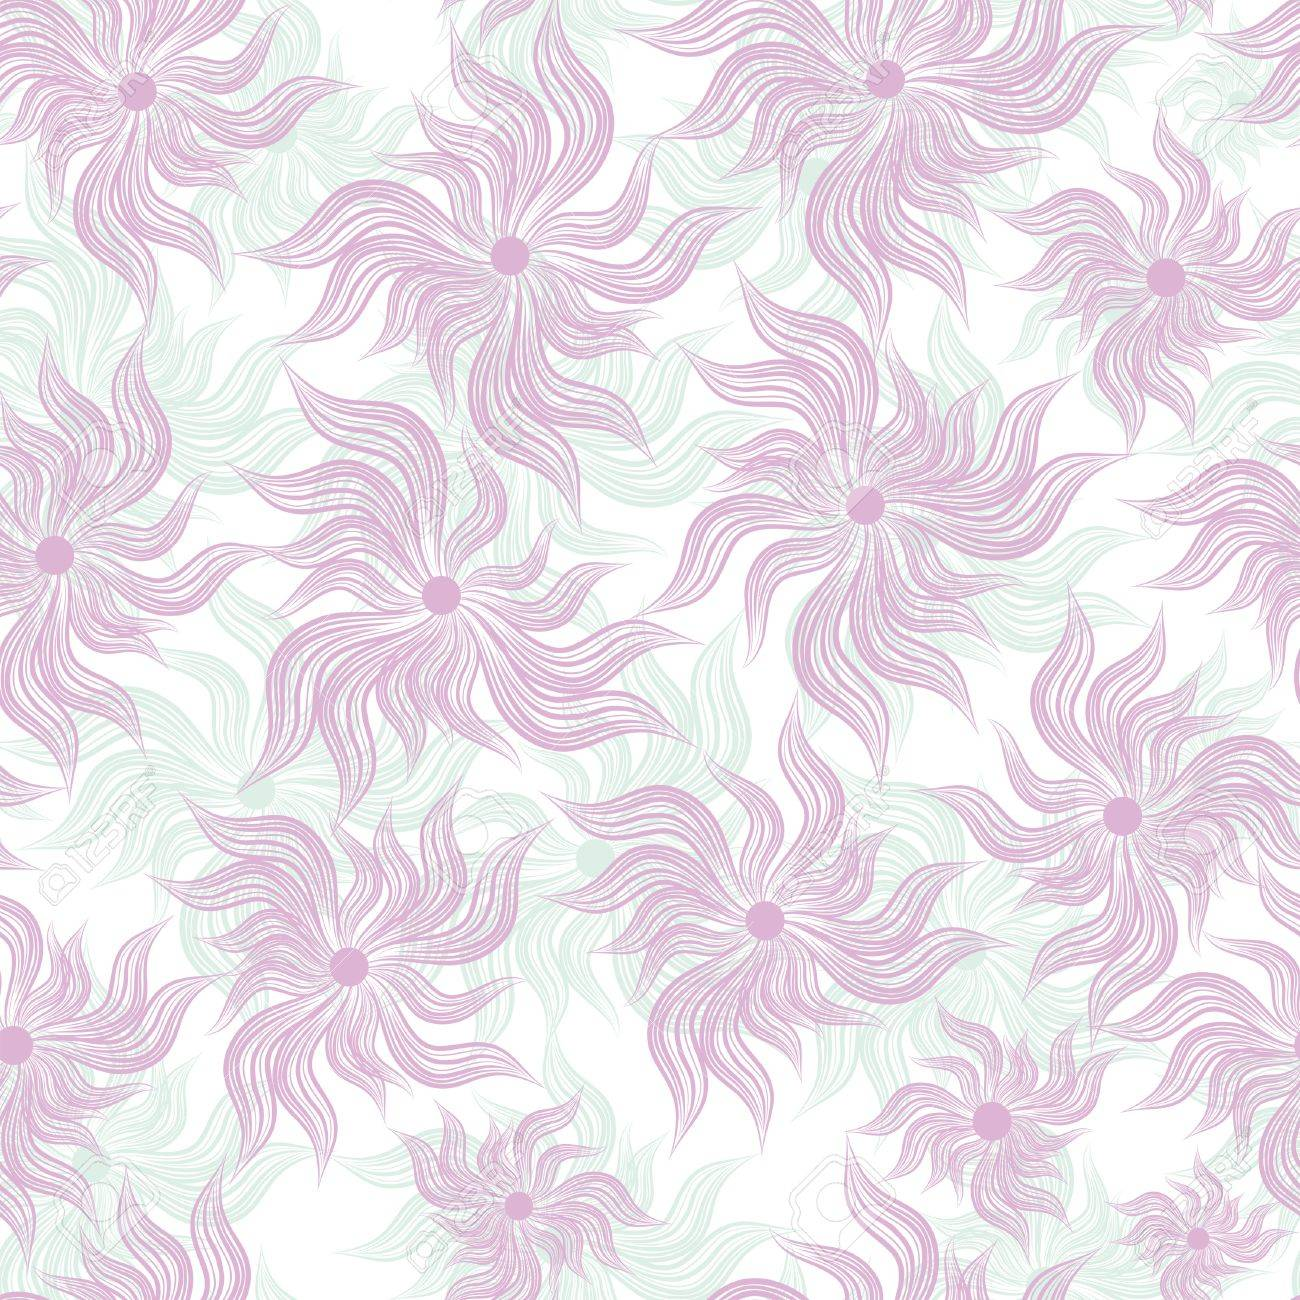 Abstract art flower seamless background pattern, floral vintage illustration. Cute, filigree wallpaper with flourishes. Stock Vector - 9902167